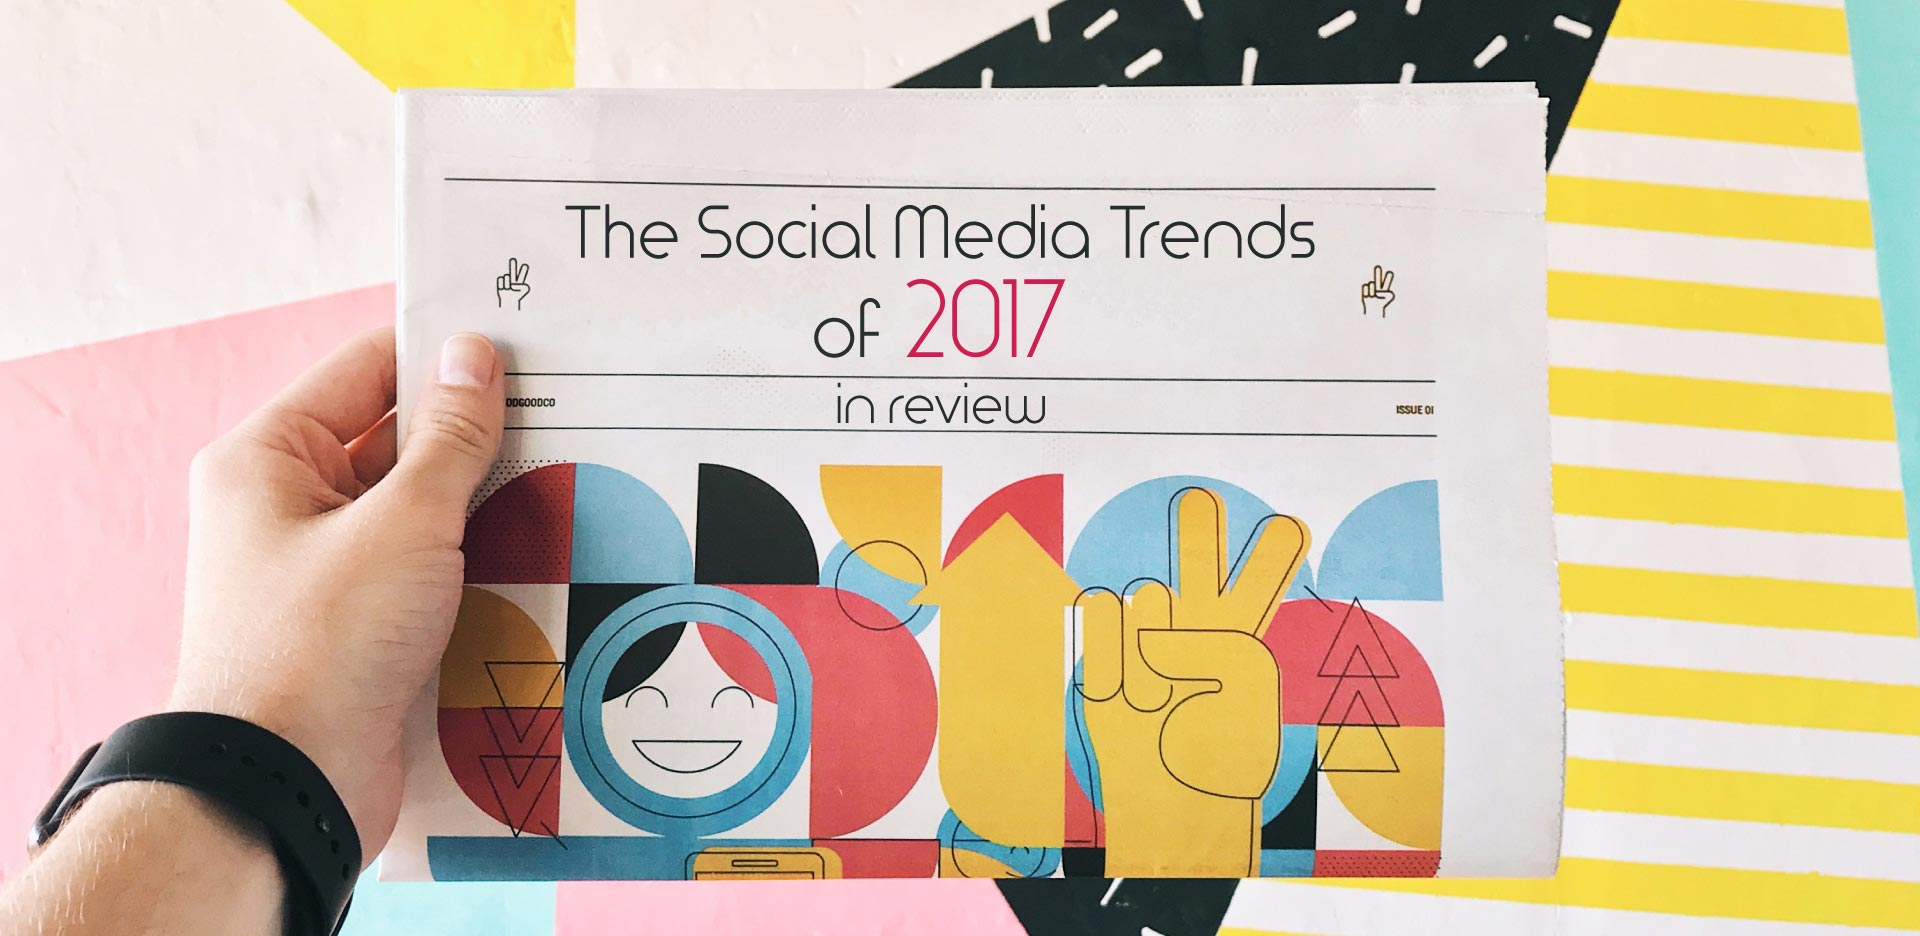 the-social-media-trends-of-2017-in-review